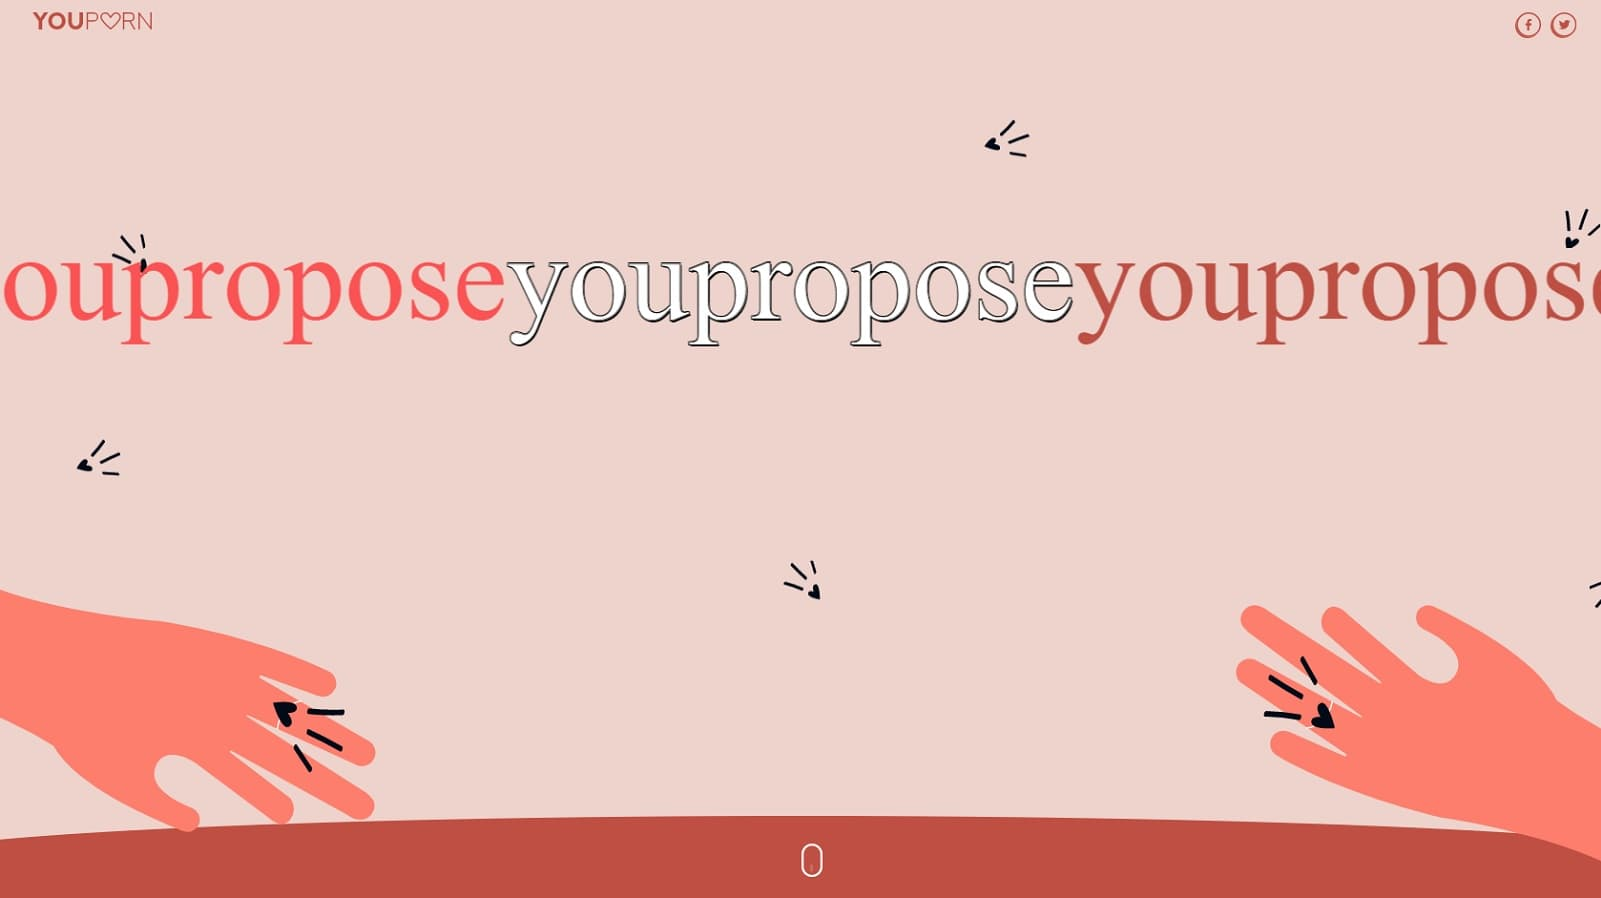 youpropose feature on youporn